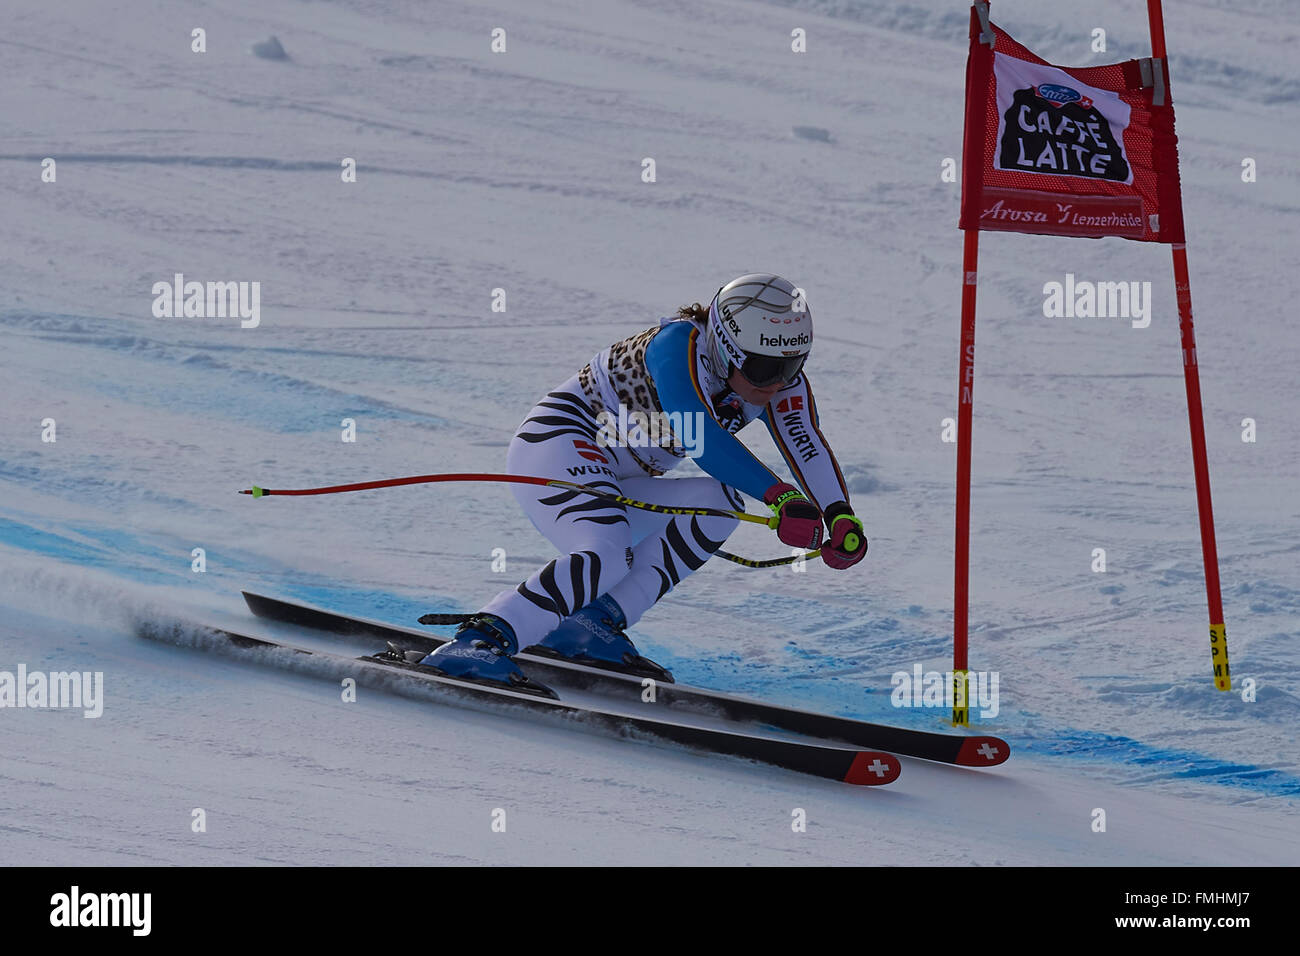 Lenzerheide, Switzerland. 12th March, 2016. Viktoria Rebensburg (GER) during her run in the Ladies' Super G at the - Stock Image